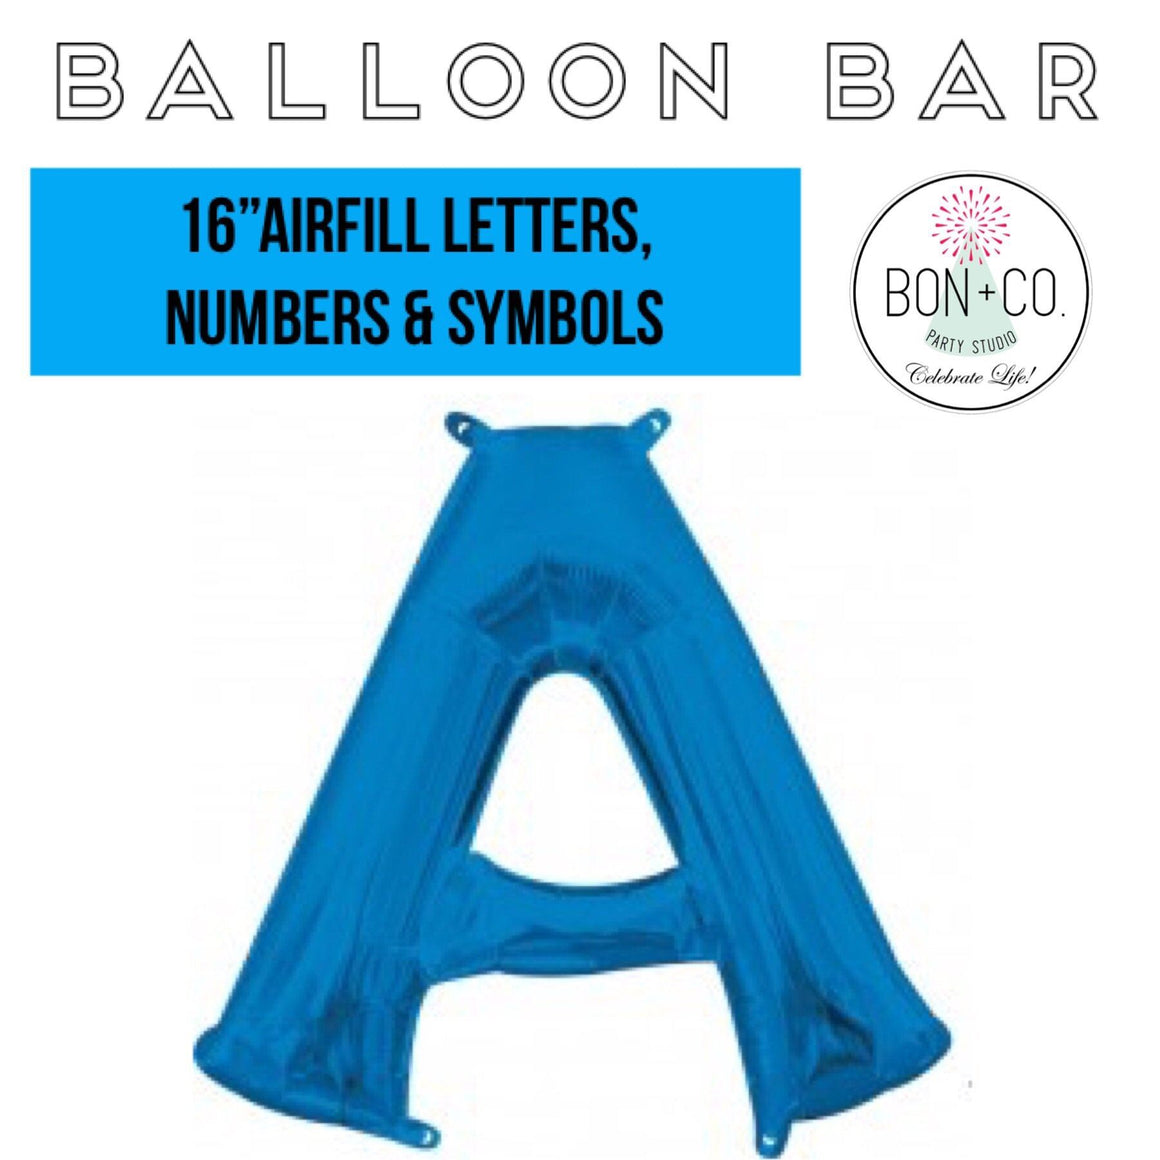 "BALLOON BAR - 16"" AIRFILL BLUE, Balloons, BETALLIC - Bon + Co. Party Studio"